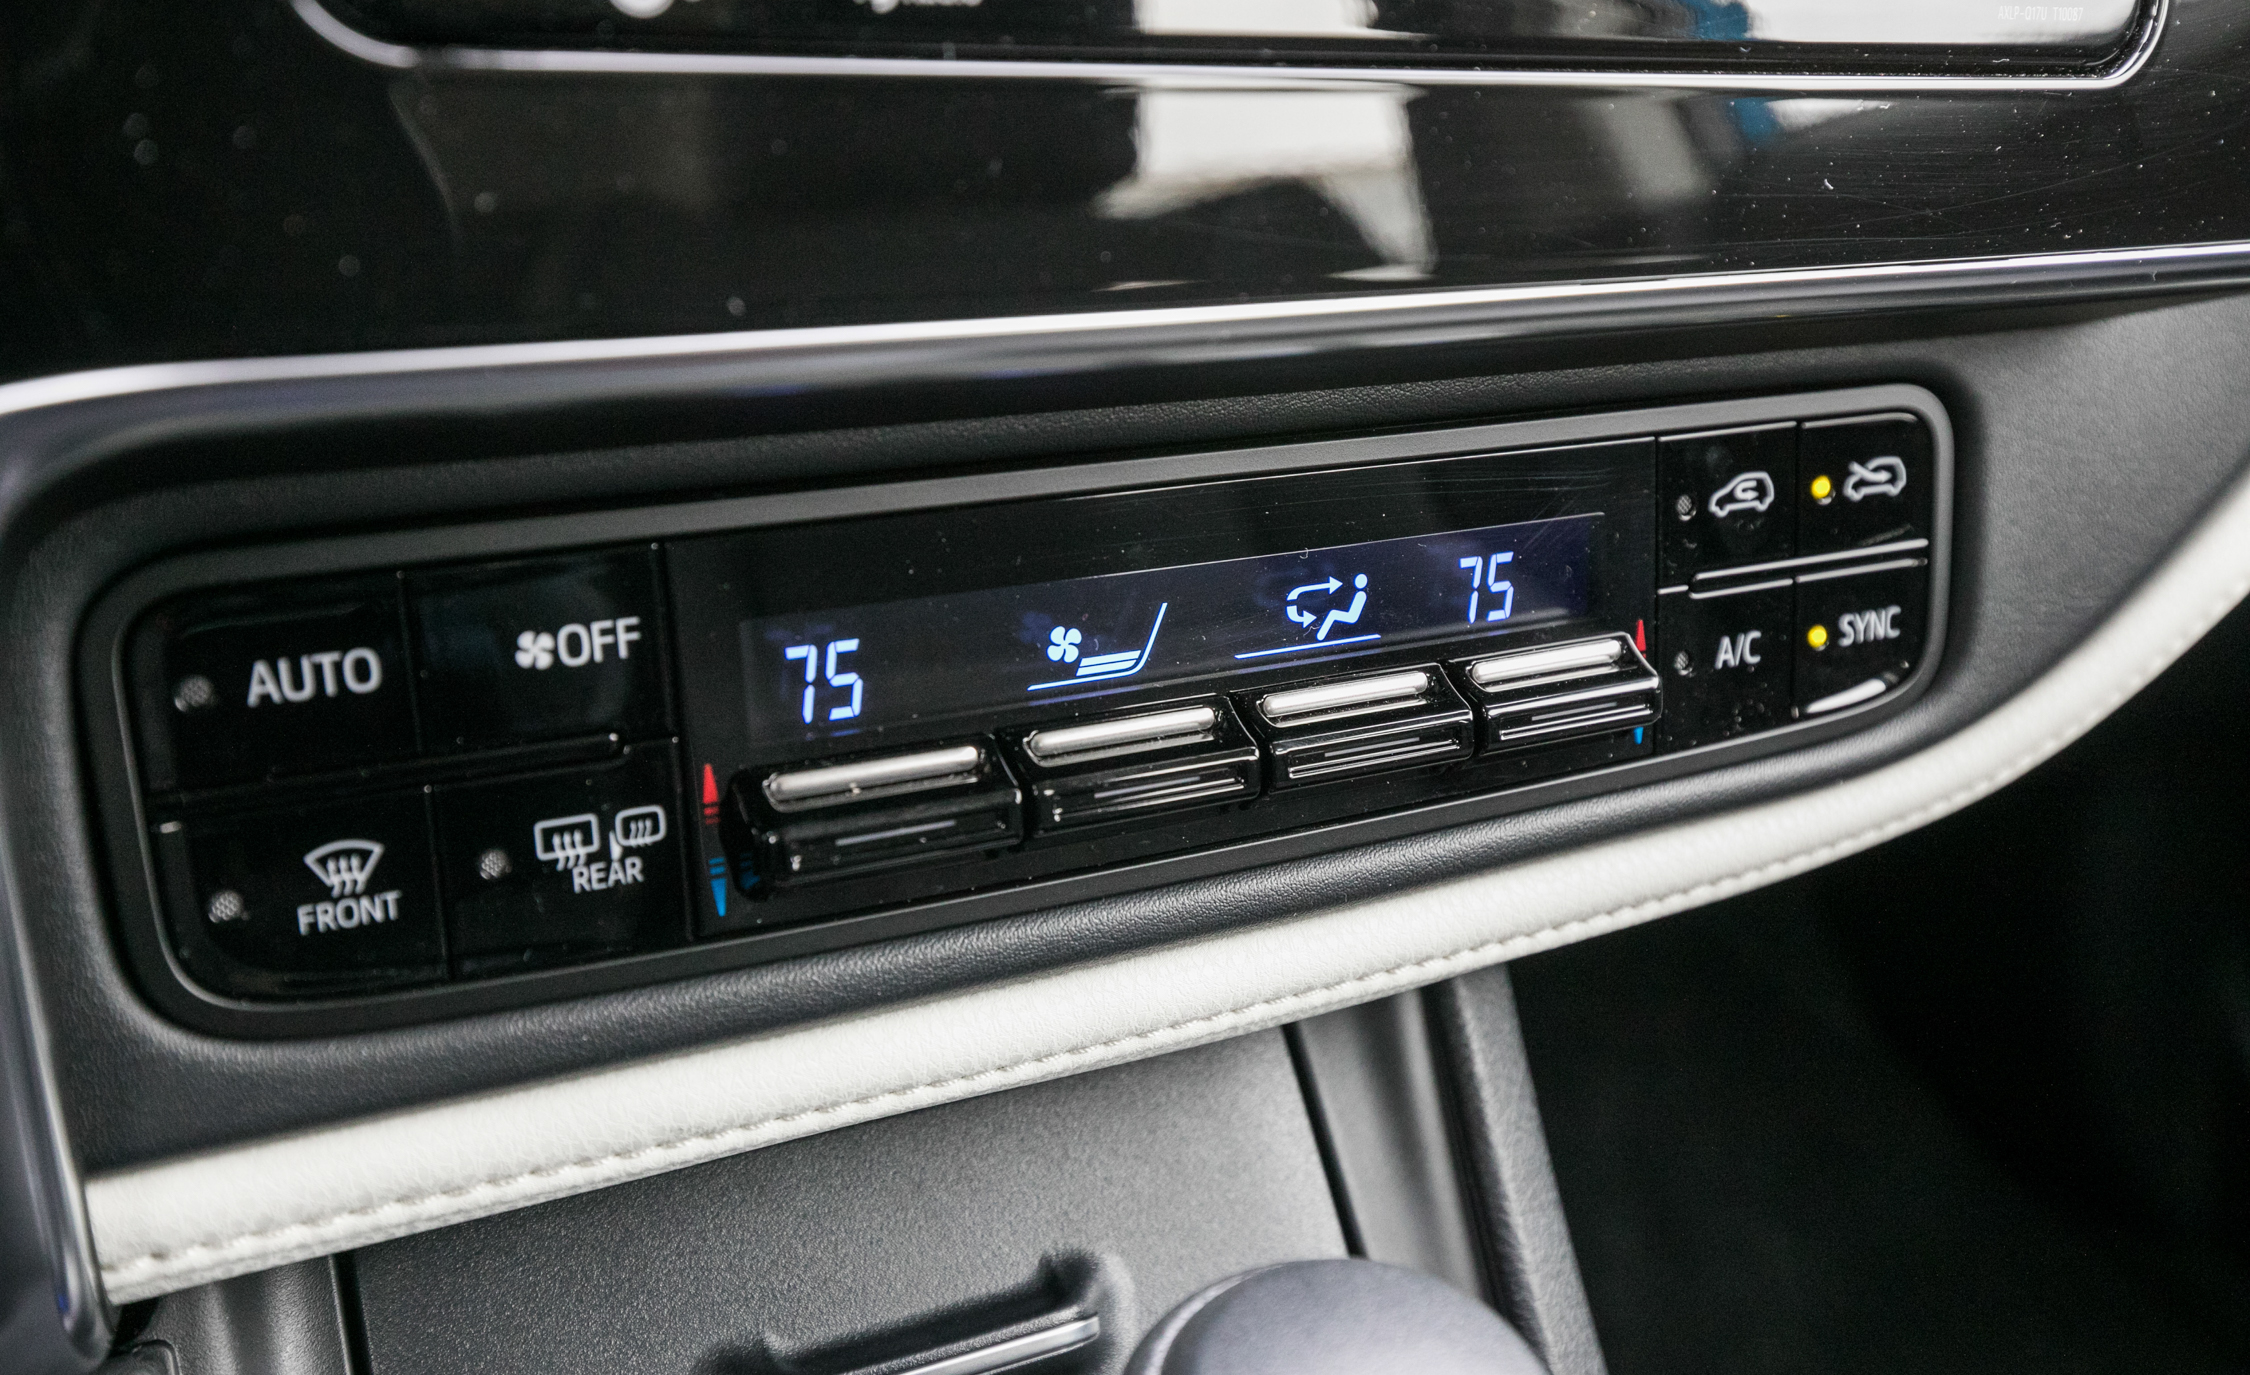 2017 Toyota Corolla IM Hatchback Interior View Climate Control (Photo 40 of 52)